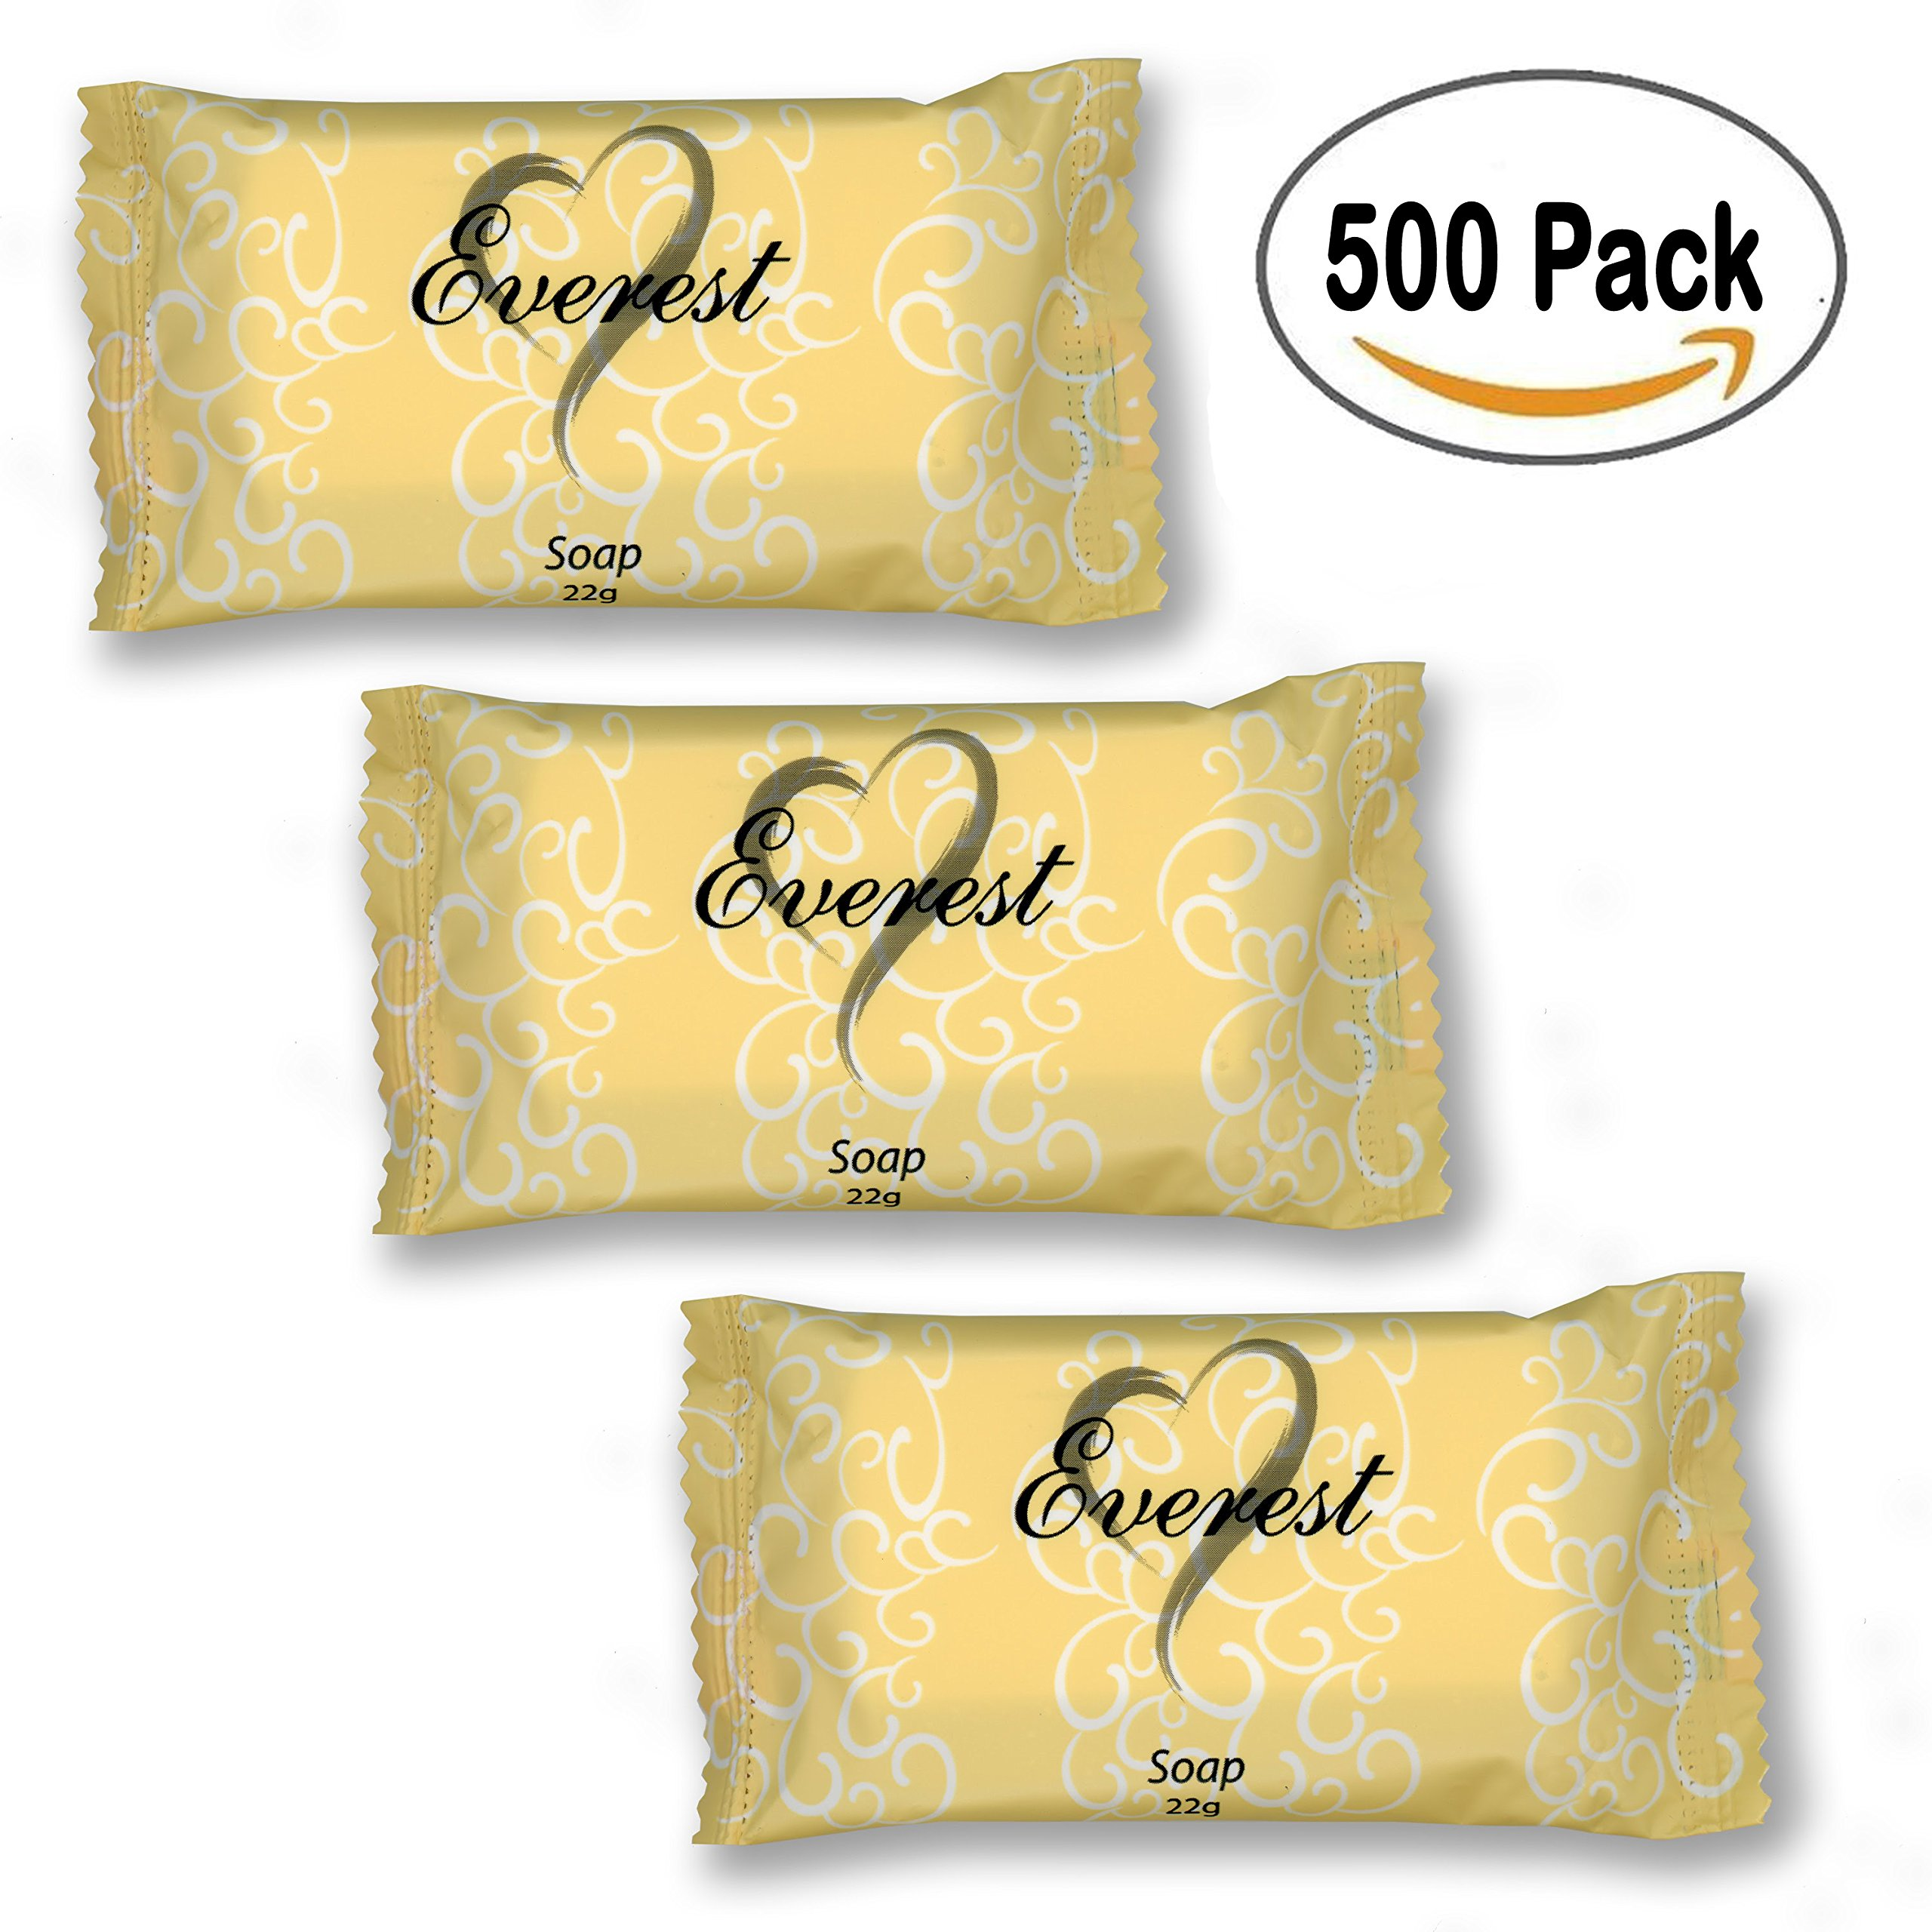 Everest Soap 500 pack, 22 grams(.78oz)Individually Wrapped Travel Soap Bar Amenities for Hotels & Motels, Resorts, AirBnB Guests Toiletries Bulk Discount Price Made of Coconut Oil (cocos nucifera oil)